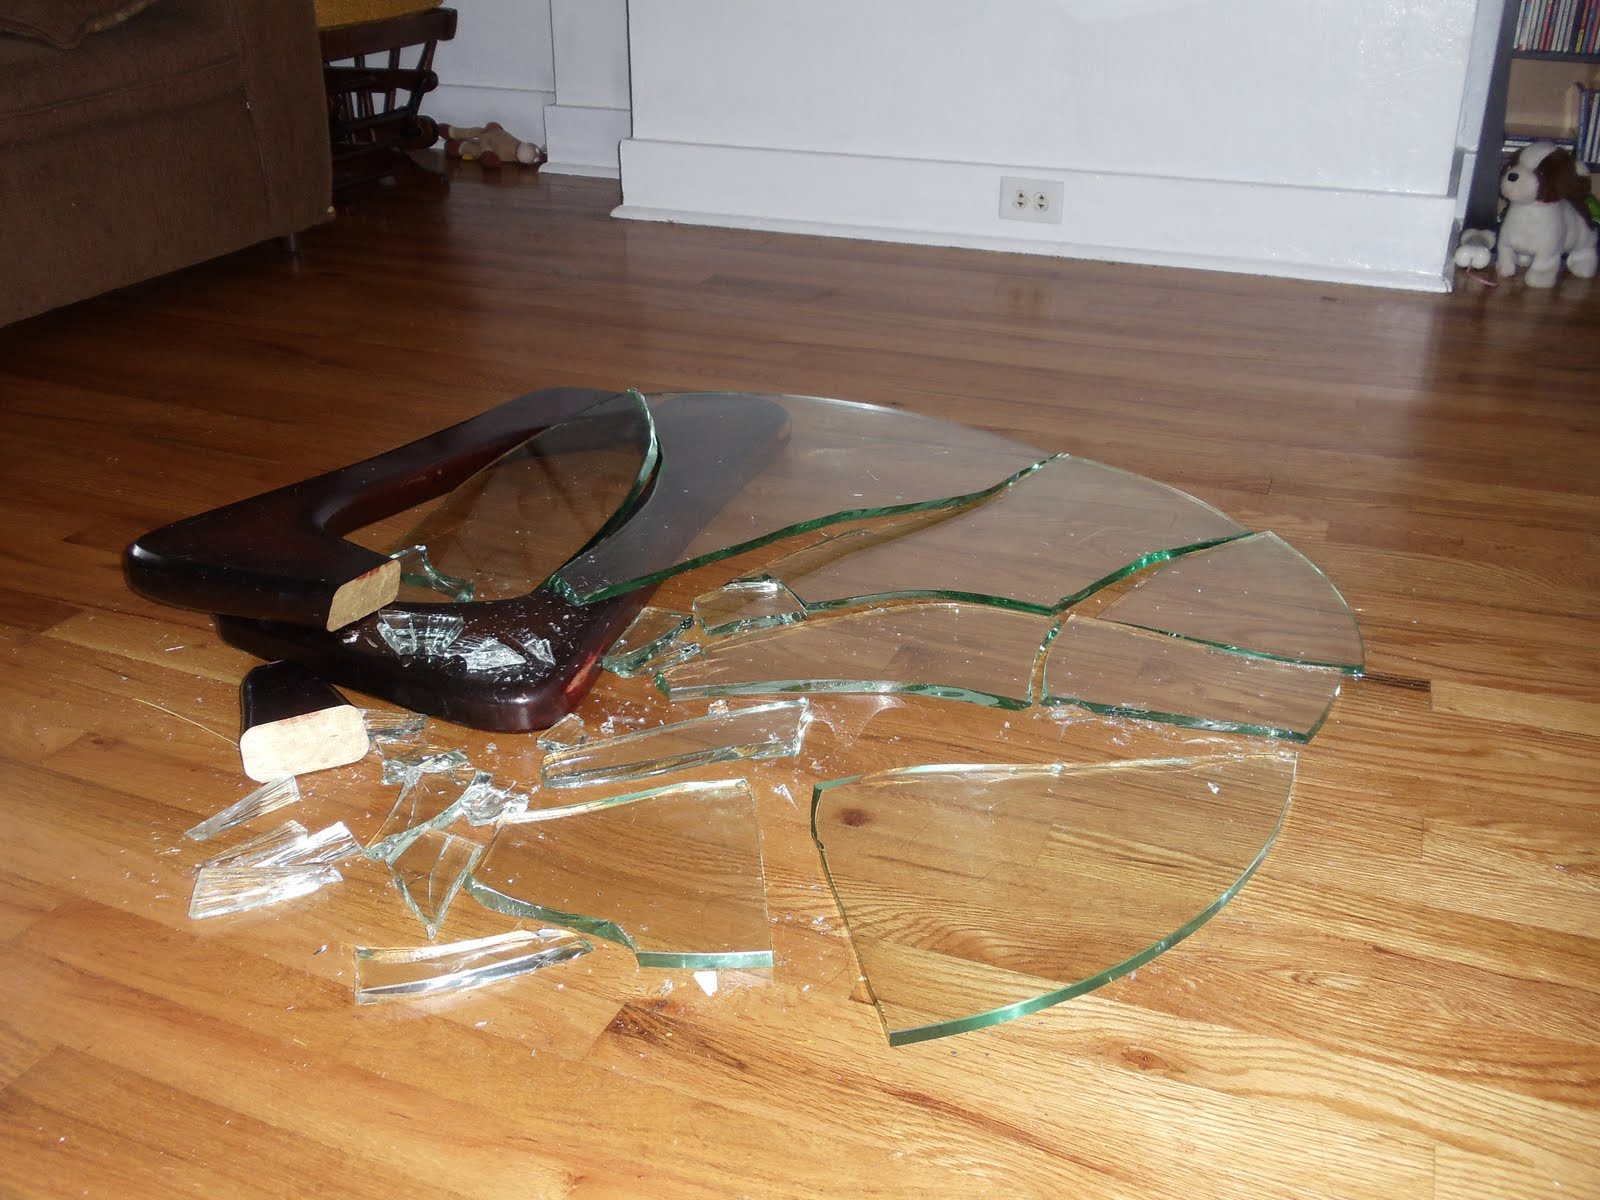 Image Gallery Of Broken Glass Table